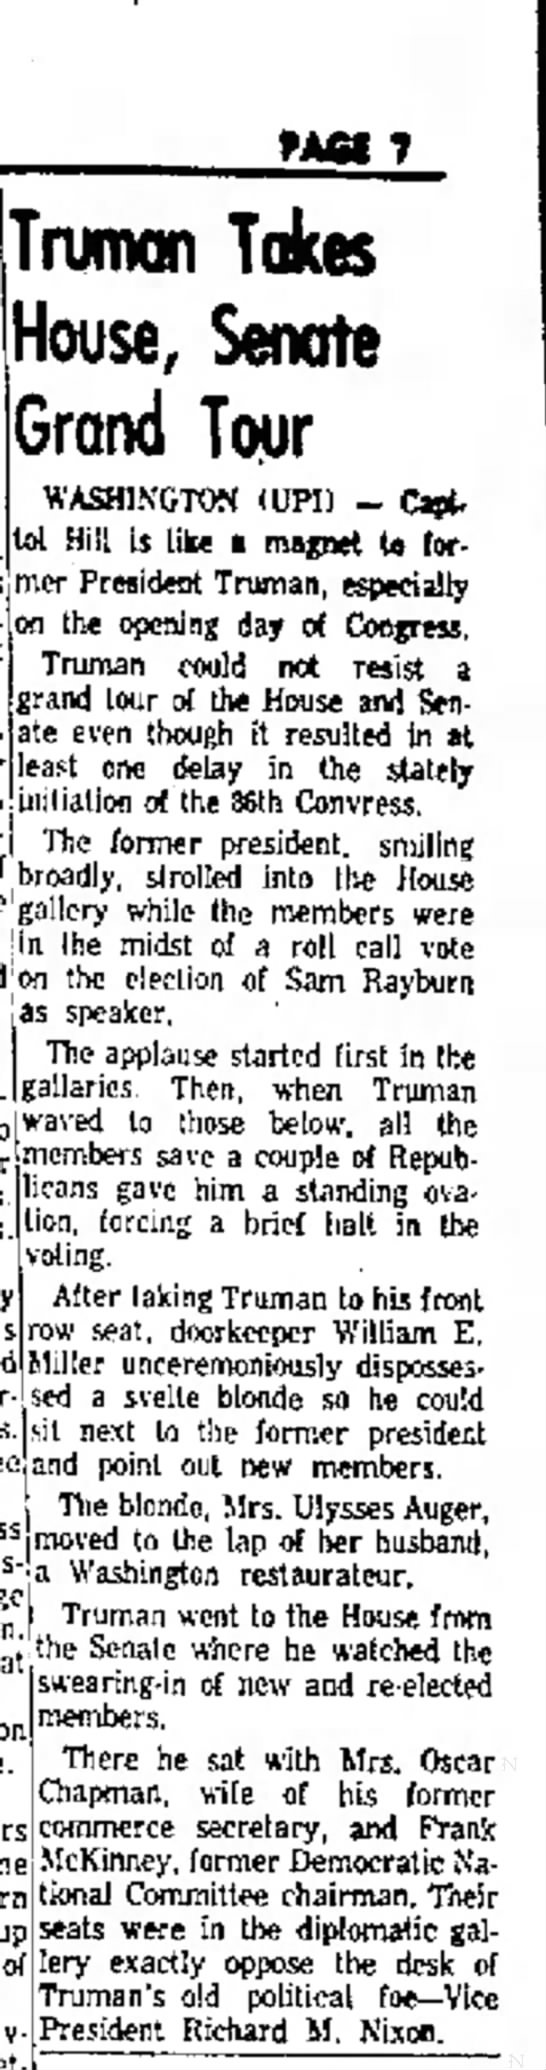 Anderson Herald (Anderson IN) 8 Jan 1959 - PAfii 7 was House, Grand Tour WASHINGTON (UPI)...